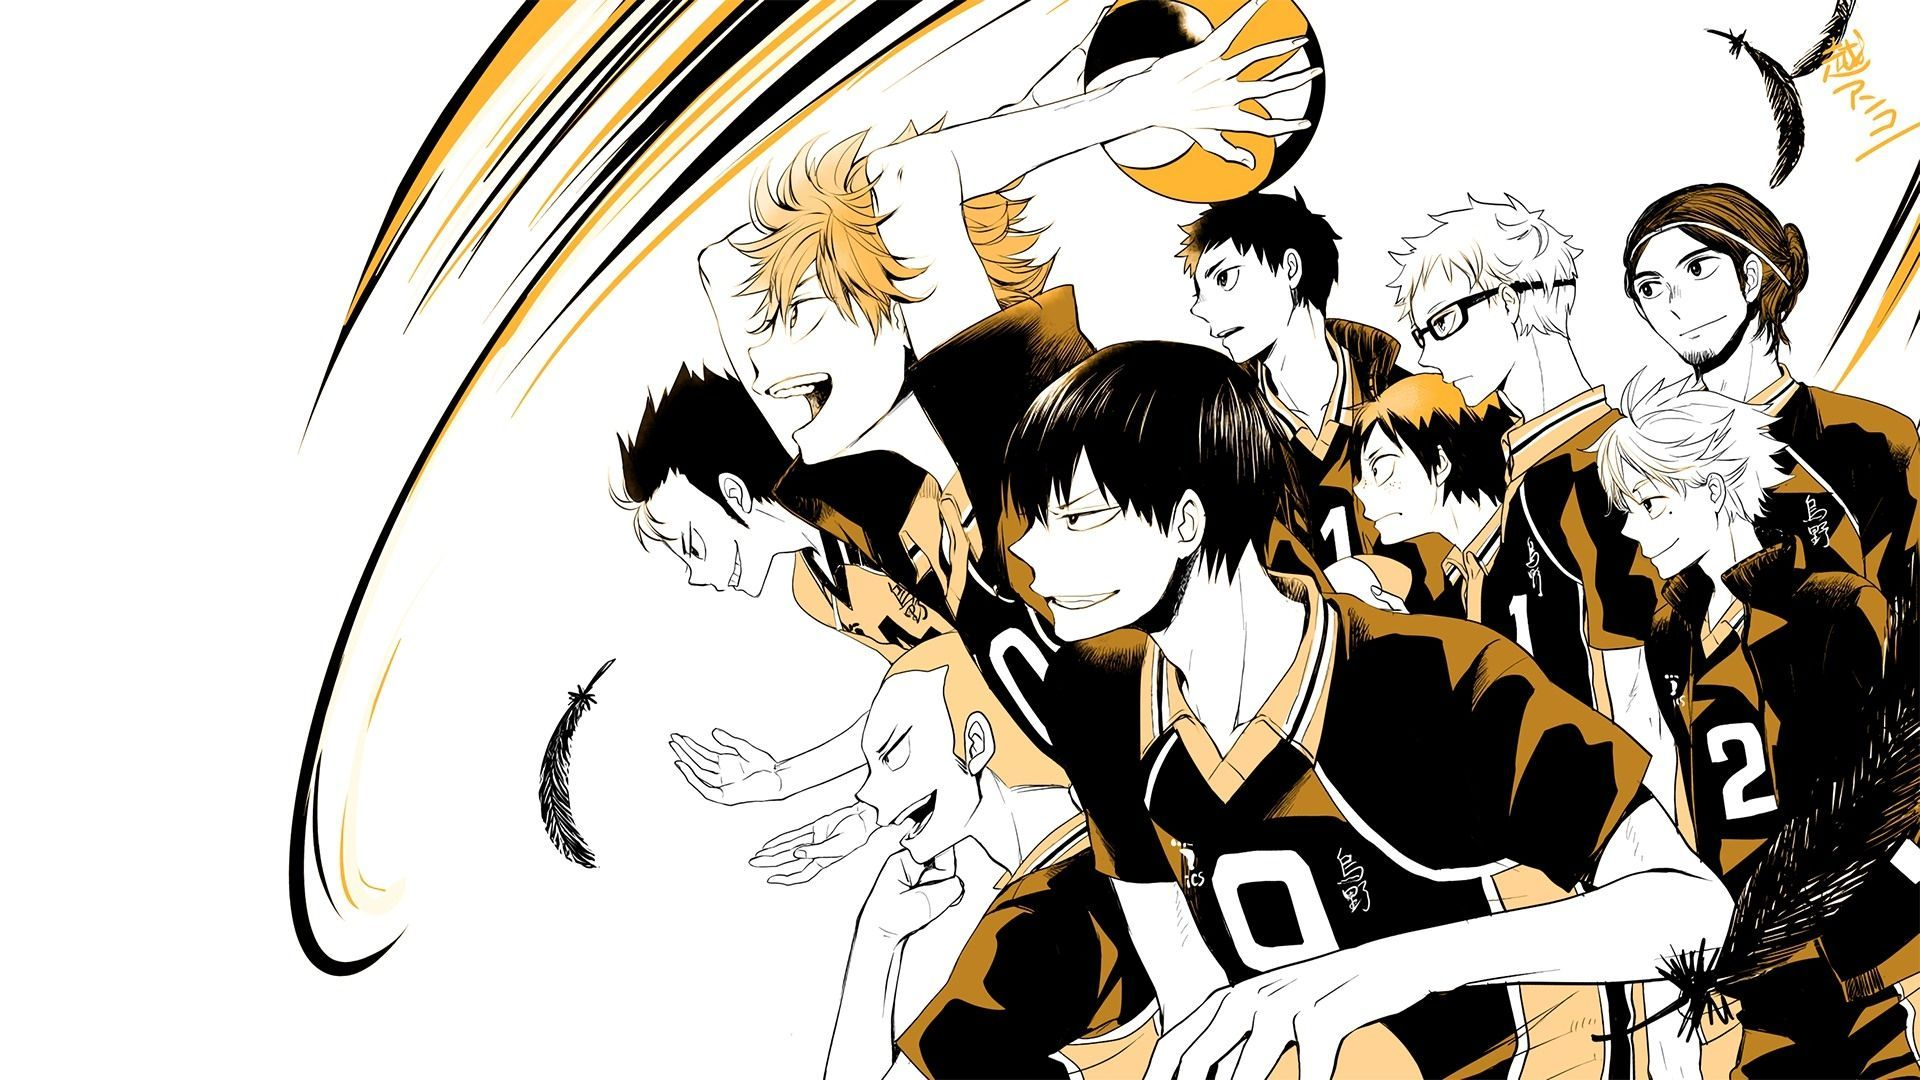 55 Volleyball Wallpapers Download At Wallpaperbro Anime Wallpaper Anime Computer Wallpaper Haikyuu Wallpaper